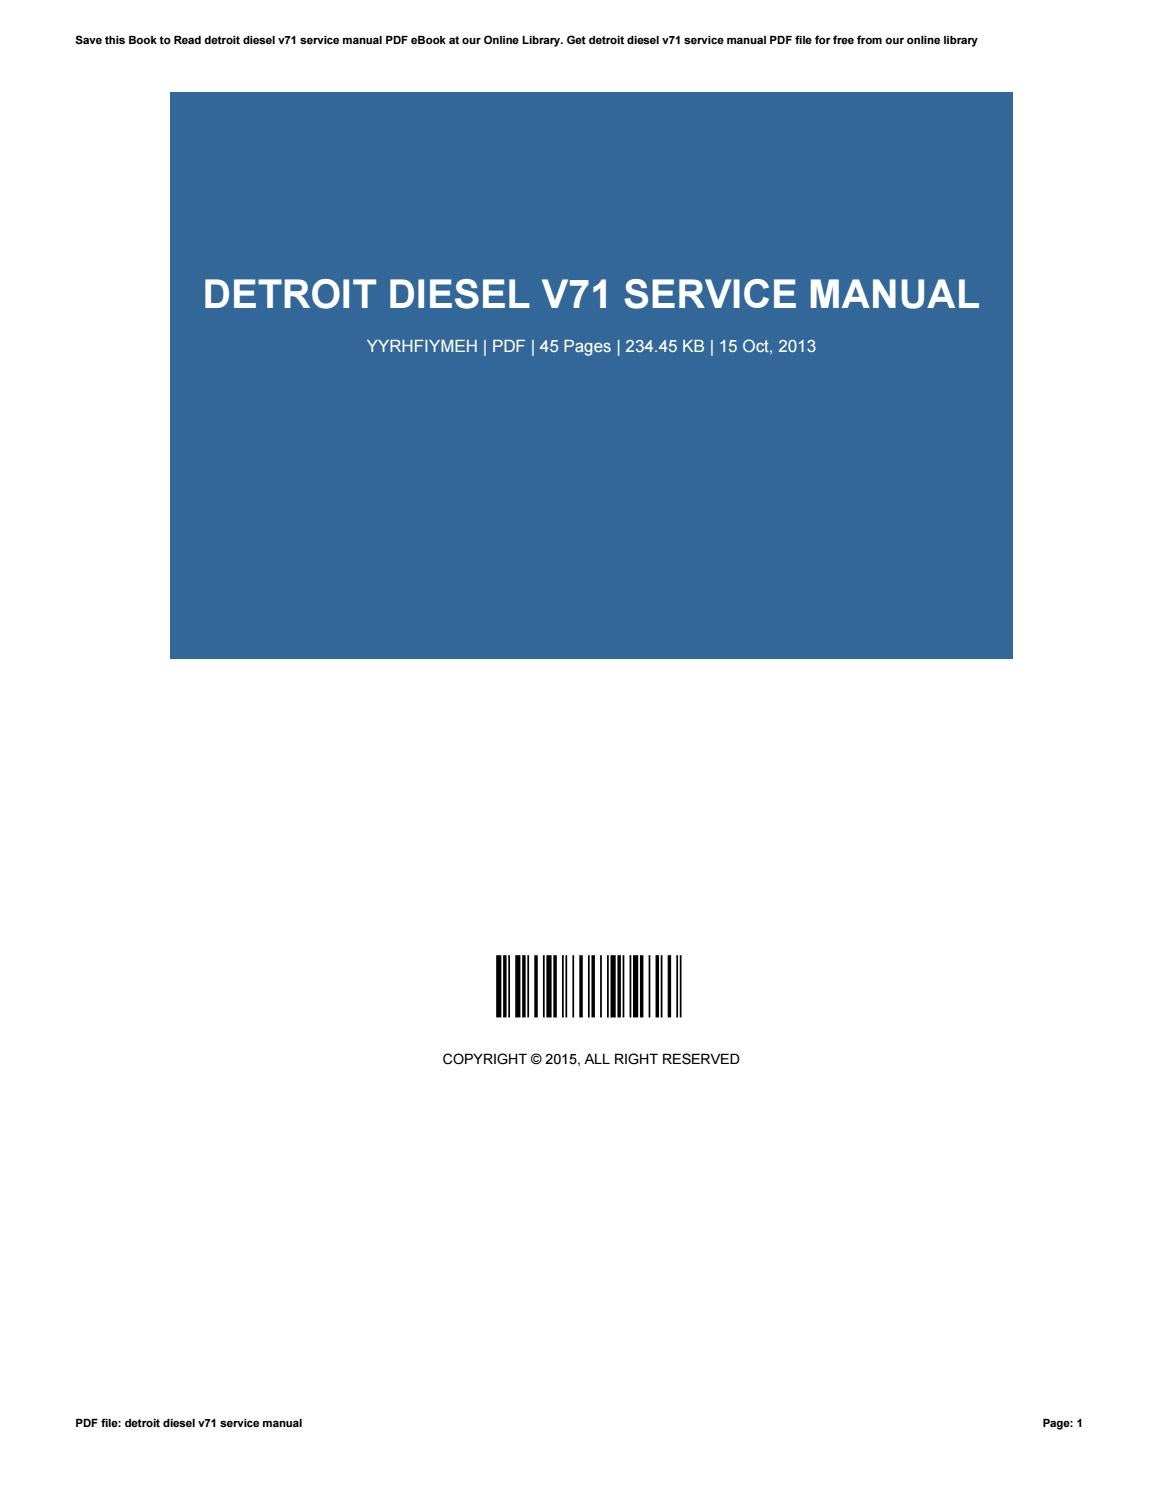 detroit diesel v71 service manual by brendadowdy3667 issuu rh issuu com detroit diesel v71 service manual pdf detroit diesel series v71 service manual